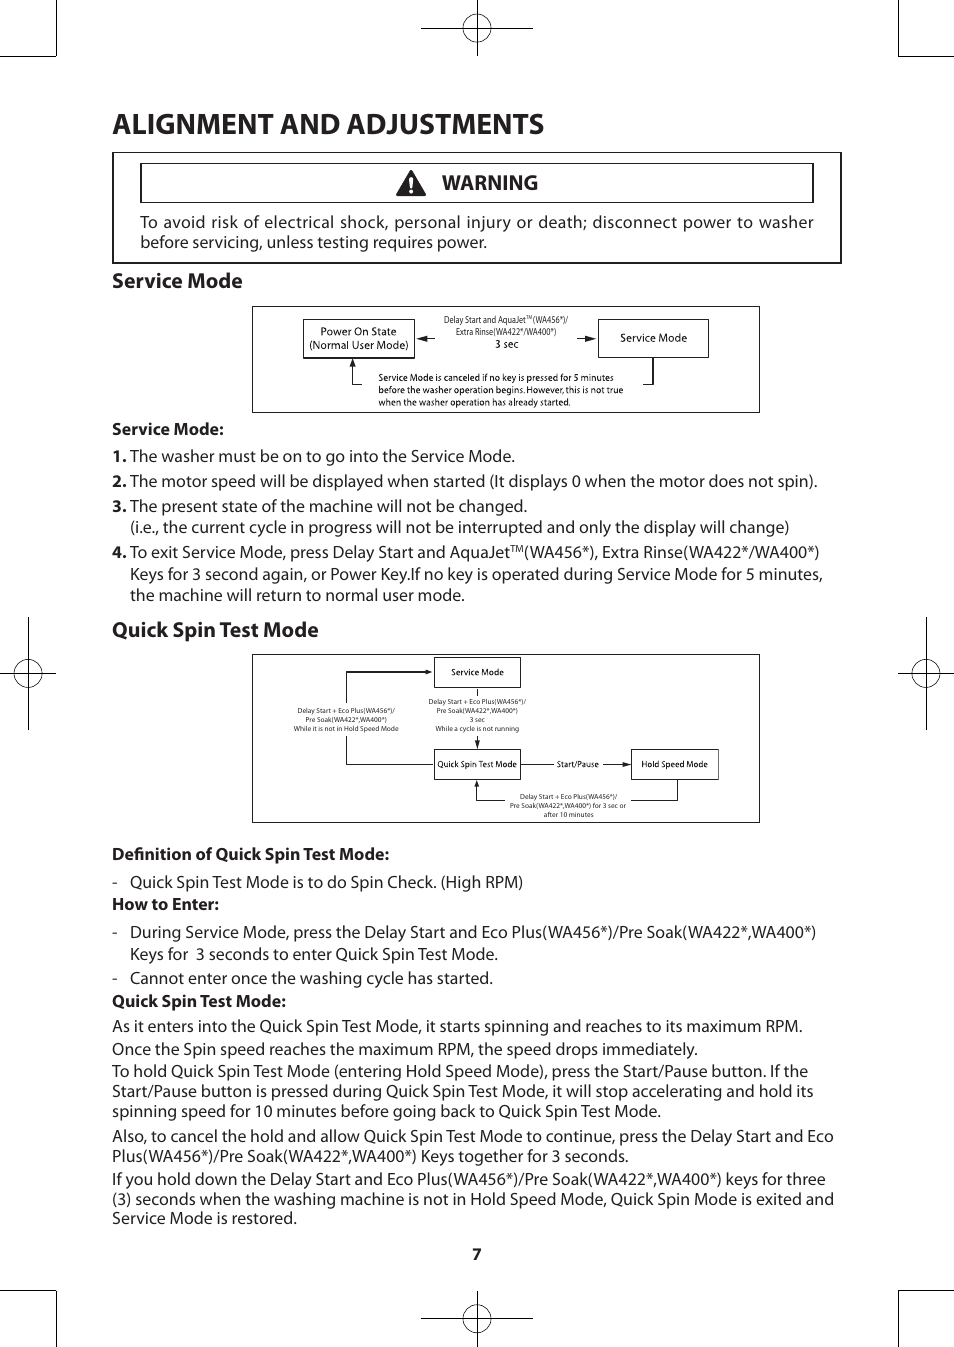 Alignment And Adjustments Service Mode Quick Spin Test Samsung Wa456drhdwr Aa User Manual Page 7 60